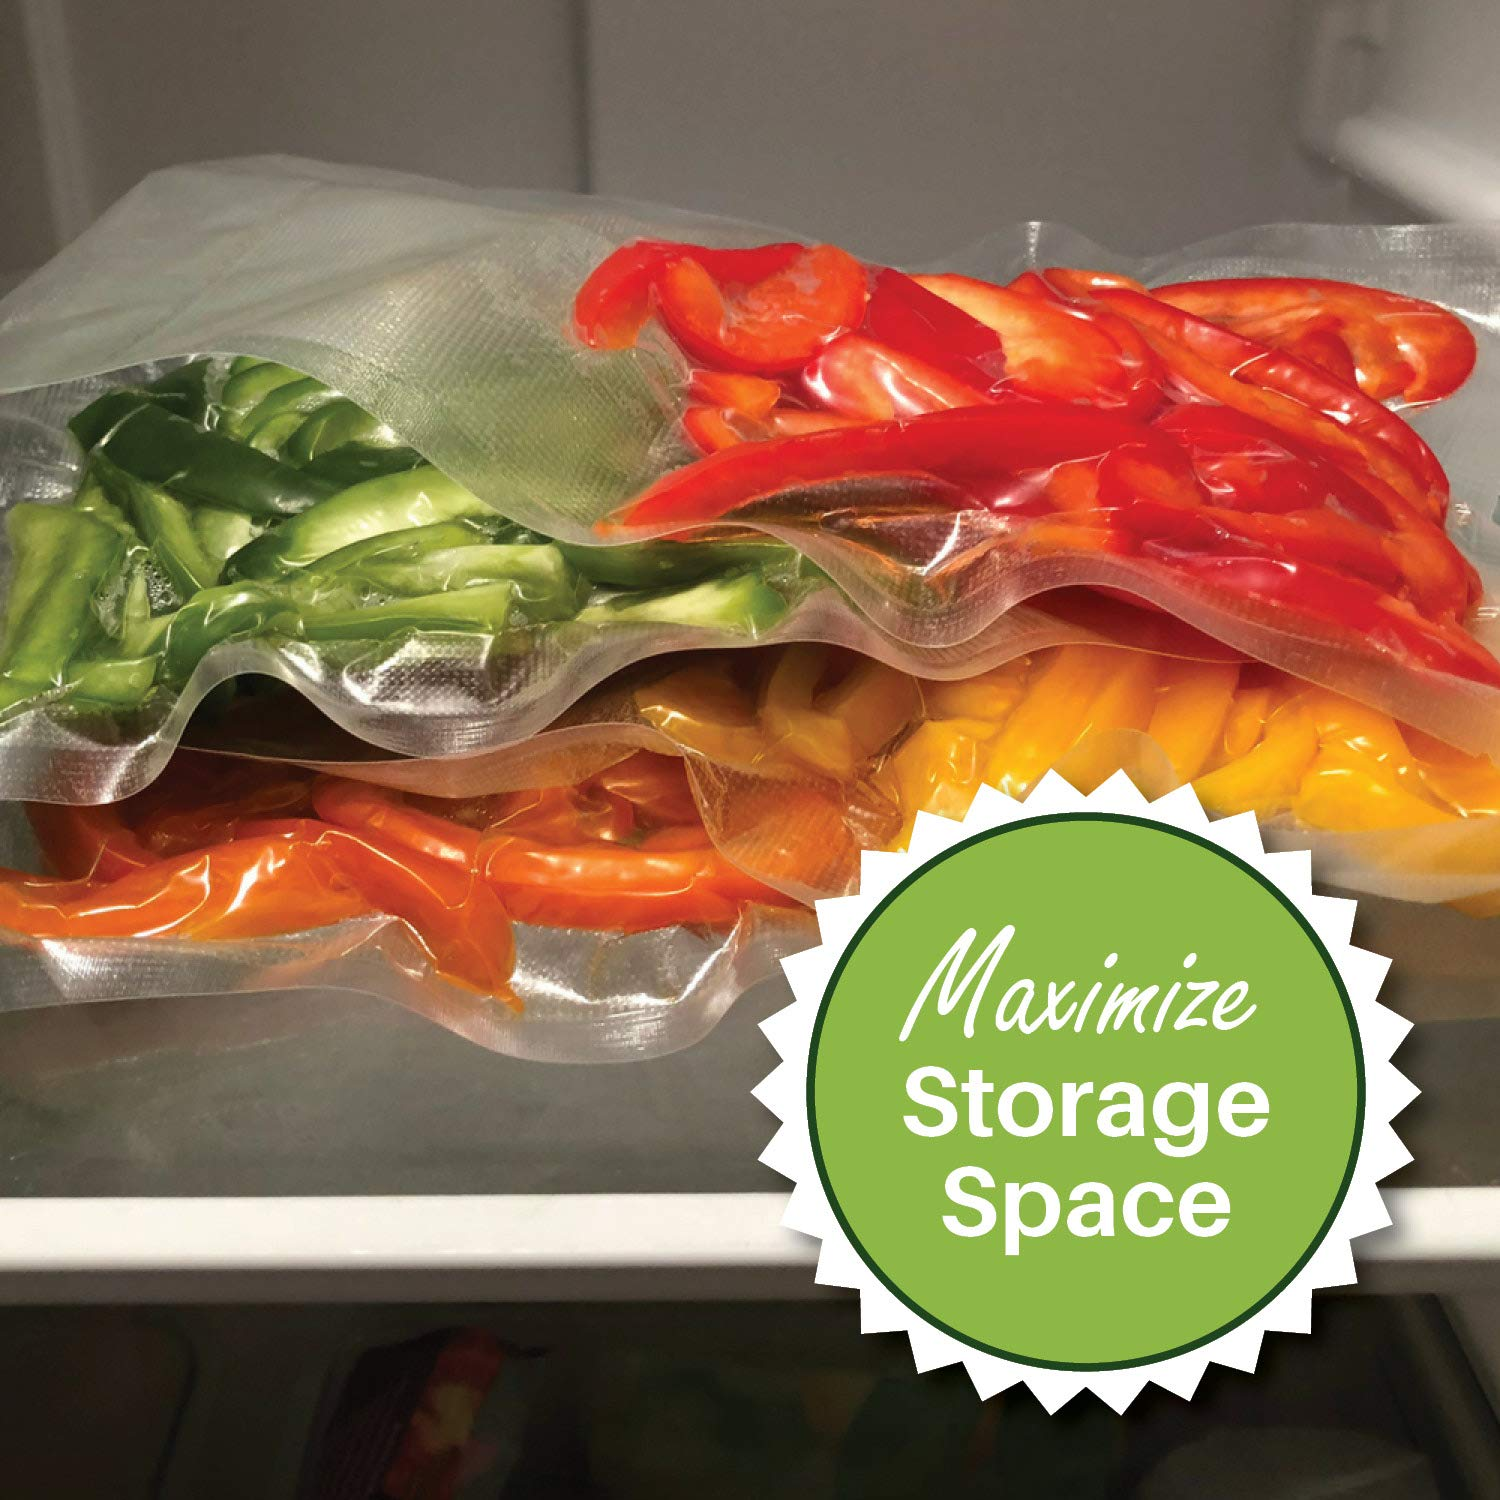 150 Combo FoodVacBags Vacuum Seal Bags - 3 sizes! 50 Pint, 50 Quart and 50 Gallon, 4 MIL, Commercial Grade, Sous Vide, No BPA, Boil, Microwave & Freezer Safe by FoodVacBags